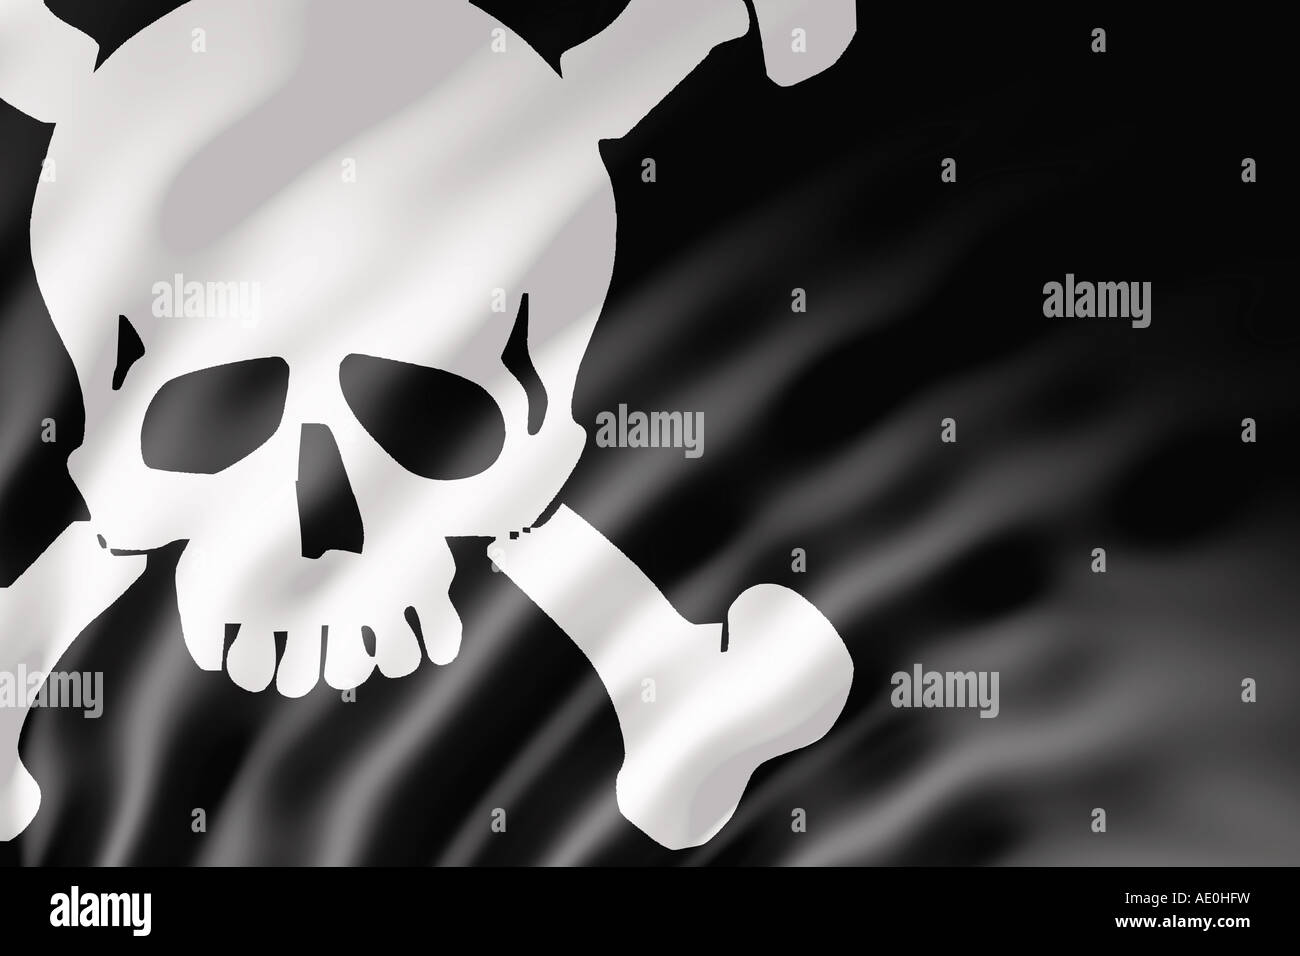 The Pirate flag or Jolly Roger shown with ripples caused by the wind - Stock Image